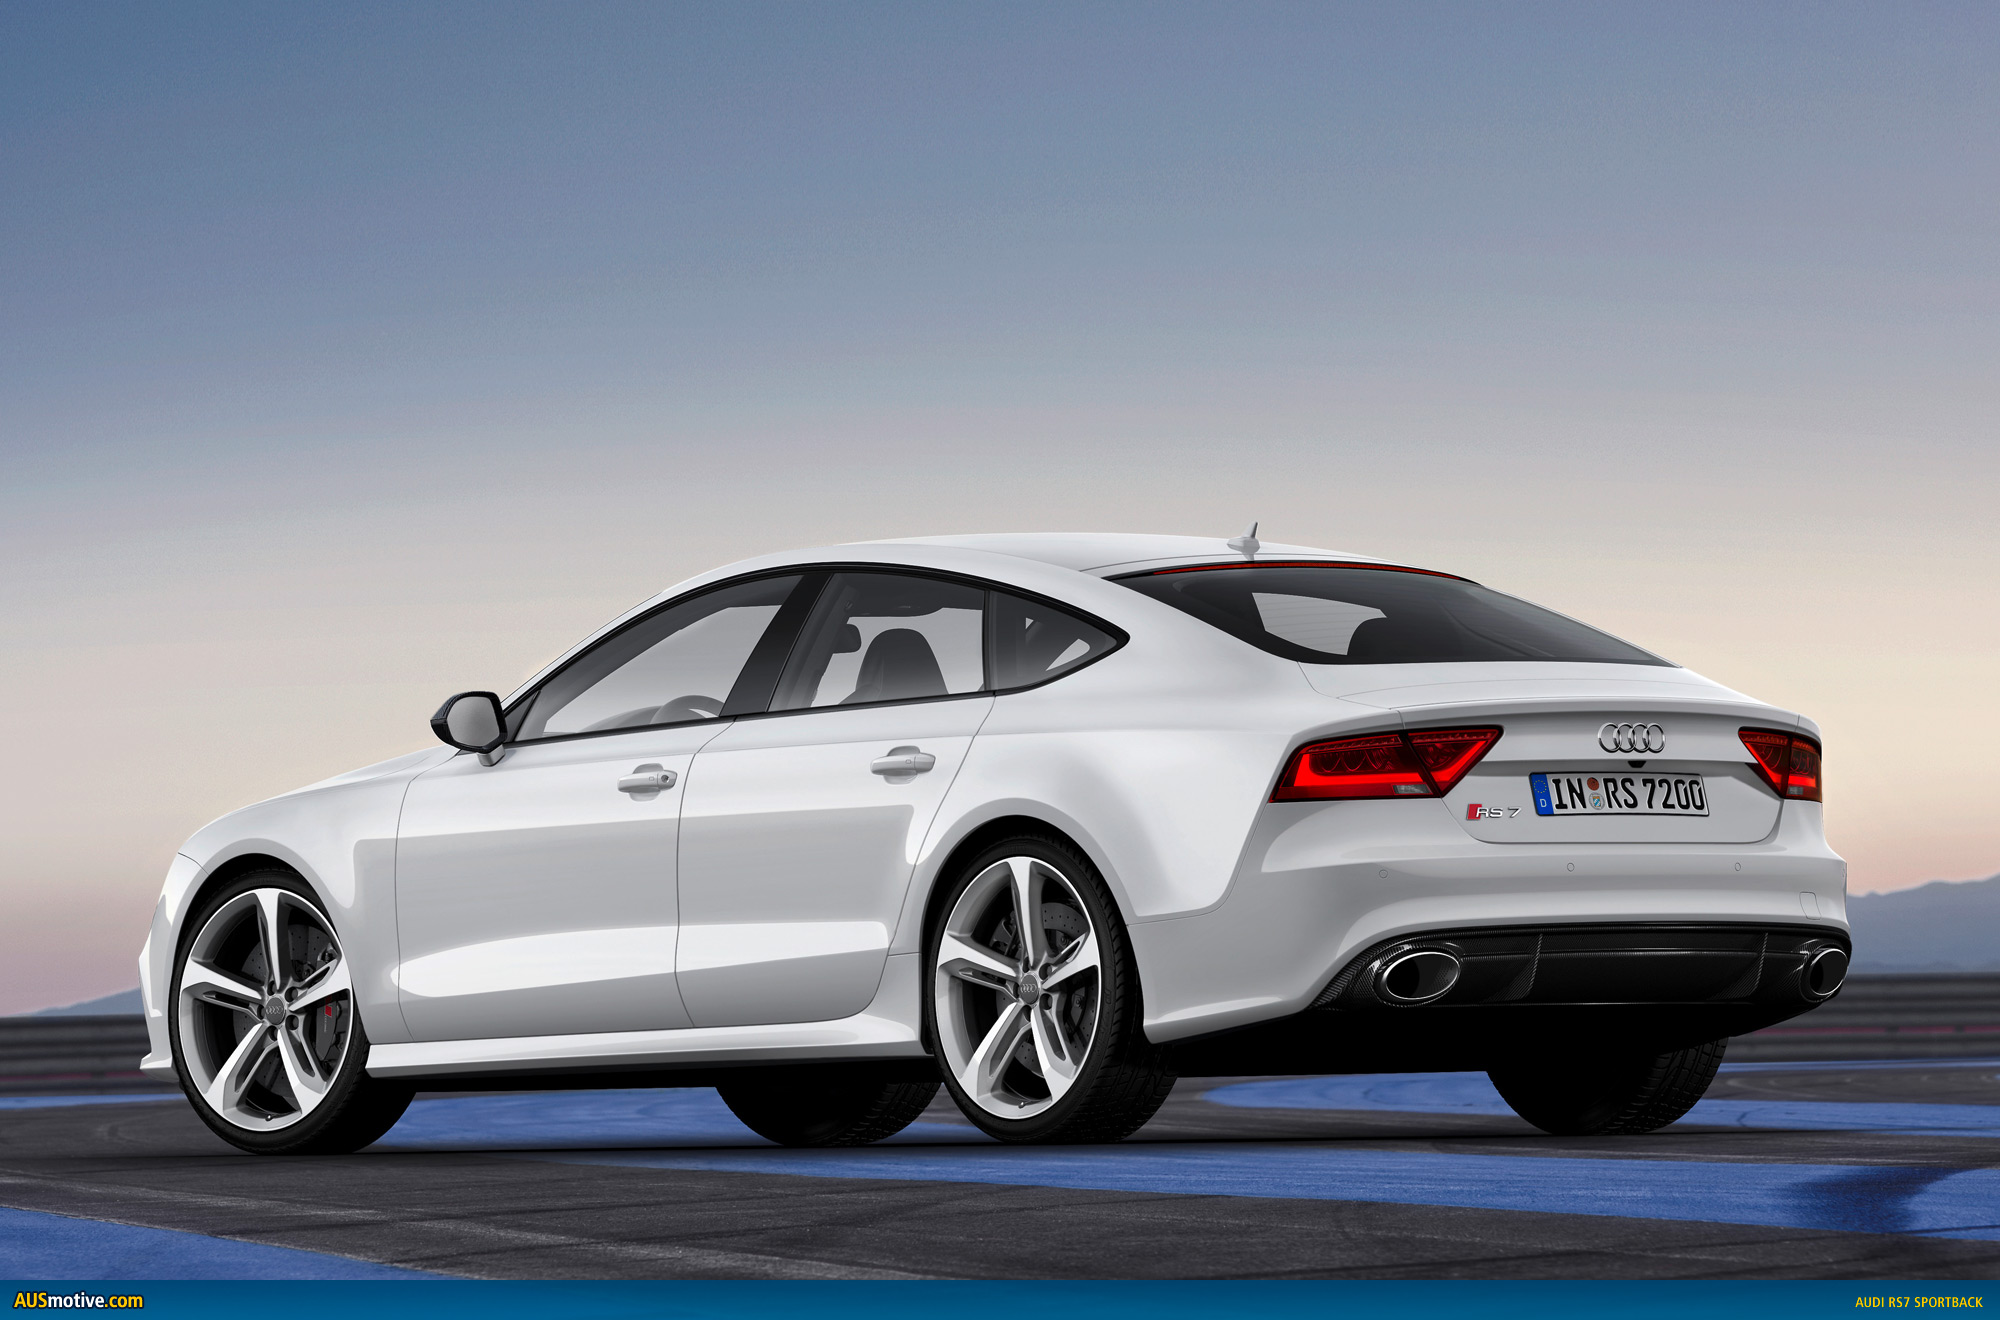 detroit 2013 audi rs7 sportback. Black Bedroom Furniture Sets. Home Design Ideas